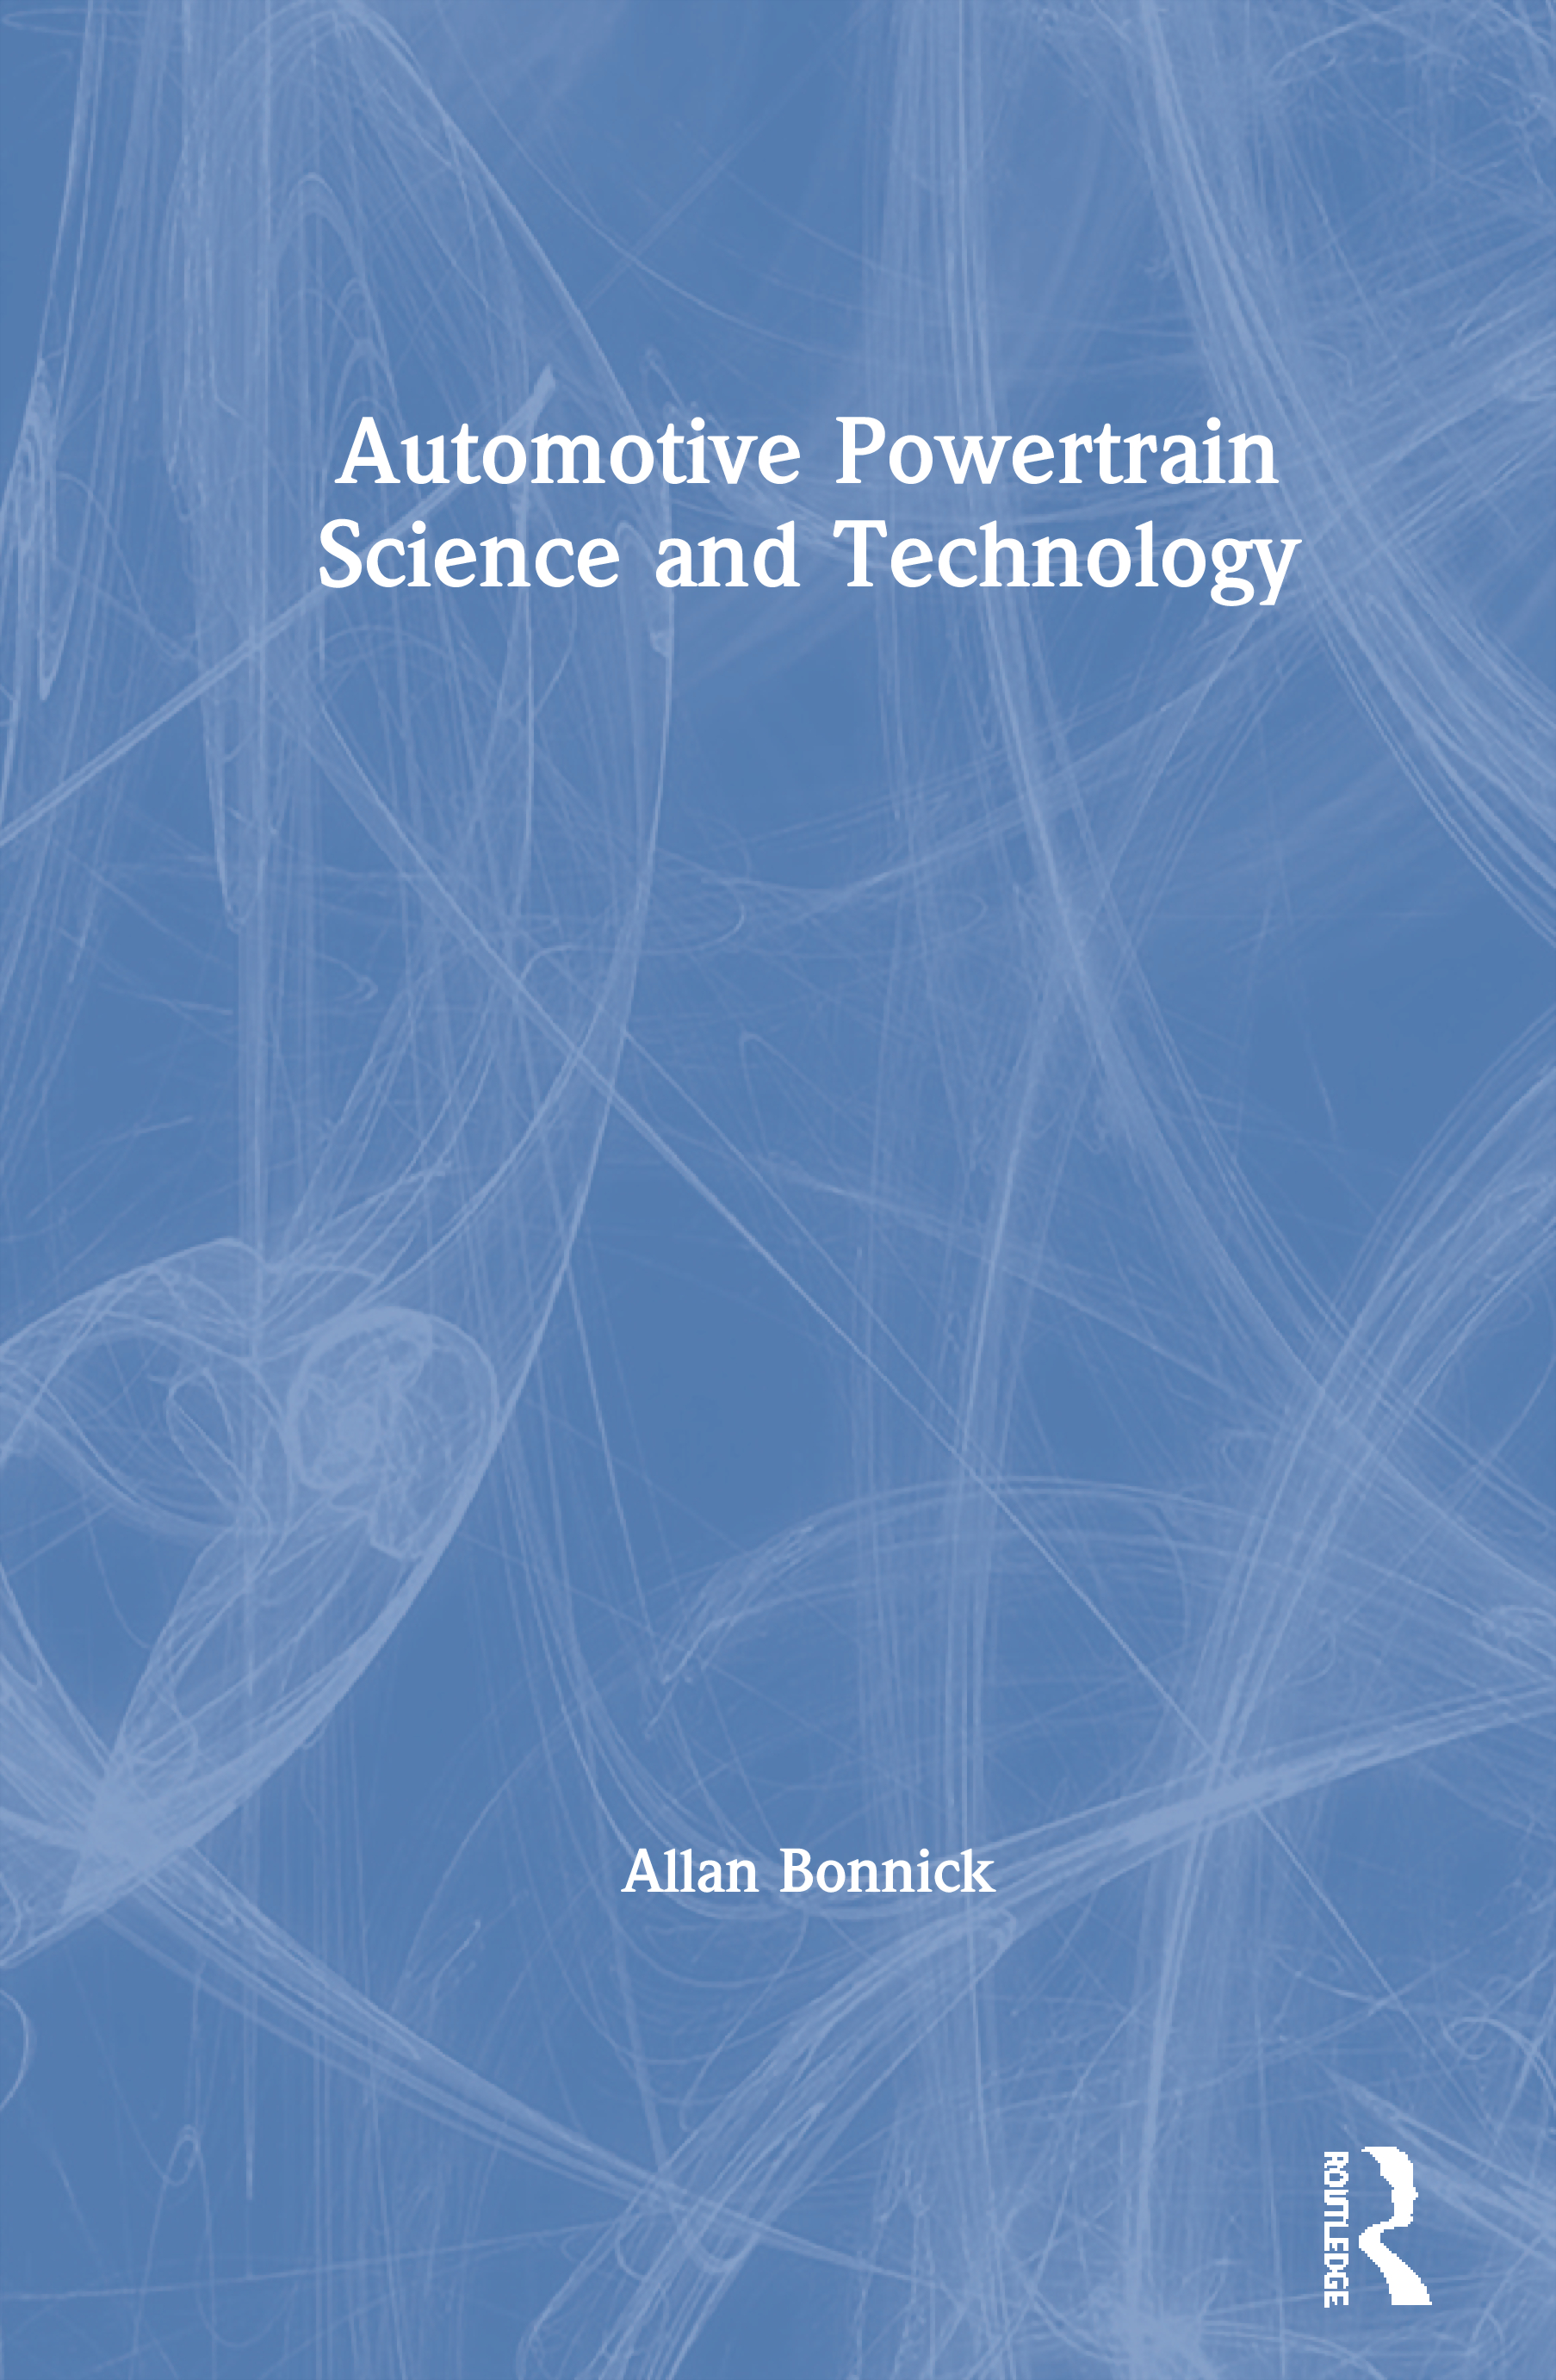 Automotive Powertrain Science and Technology: 1st Edition (Hardback) book cover